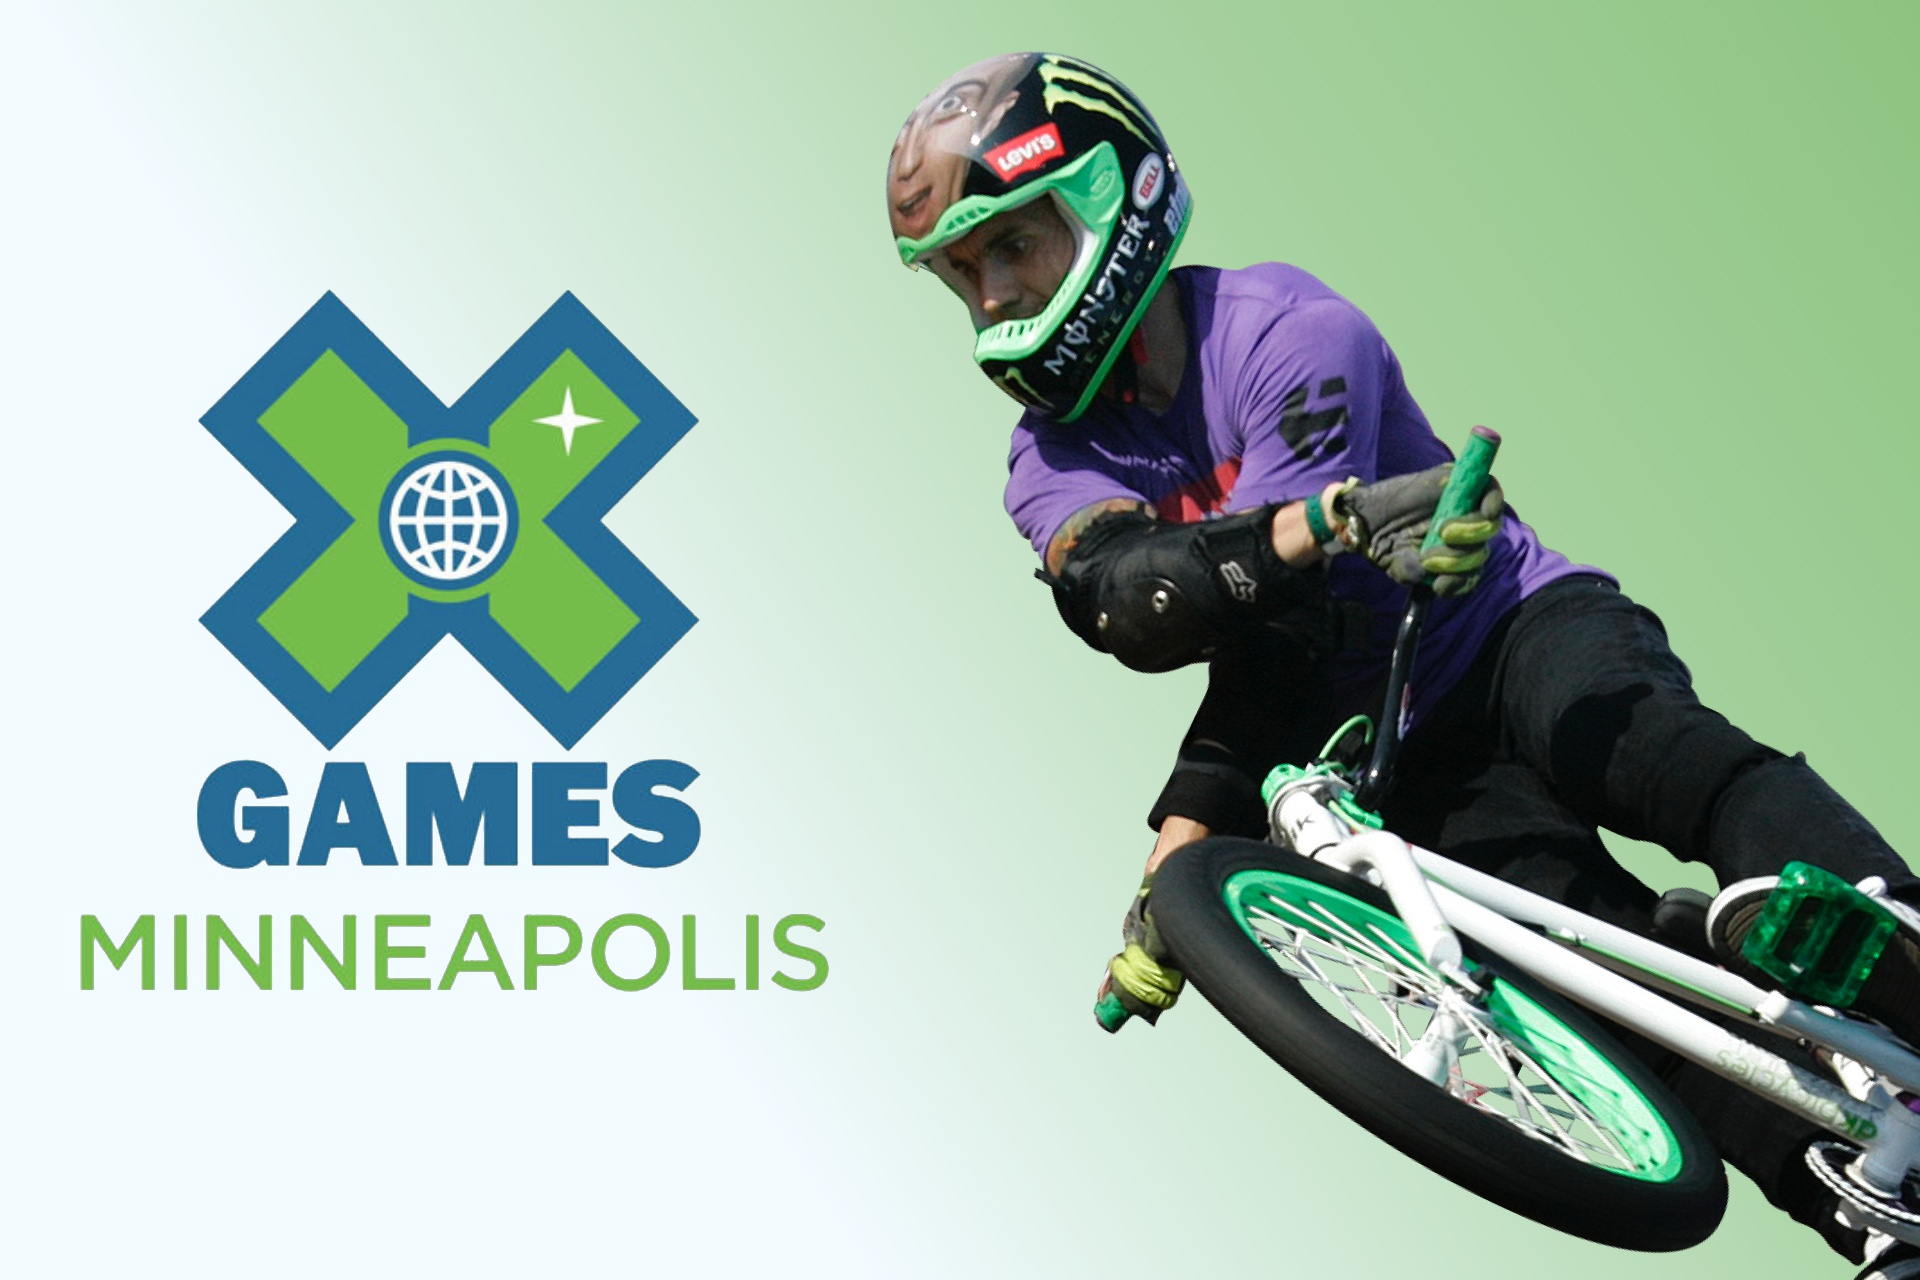 X_Games_Minneapolis_Jamie_Bestwick.jpg